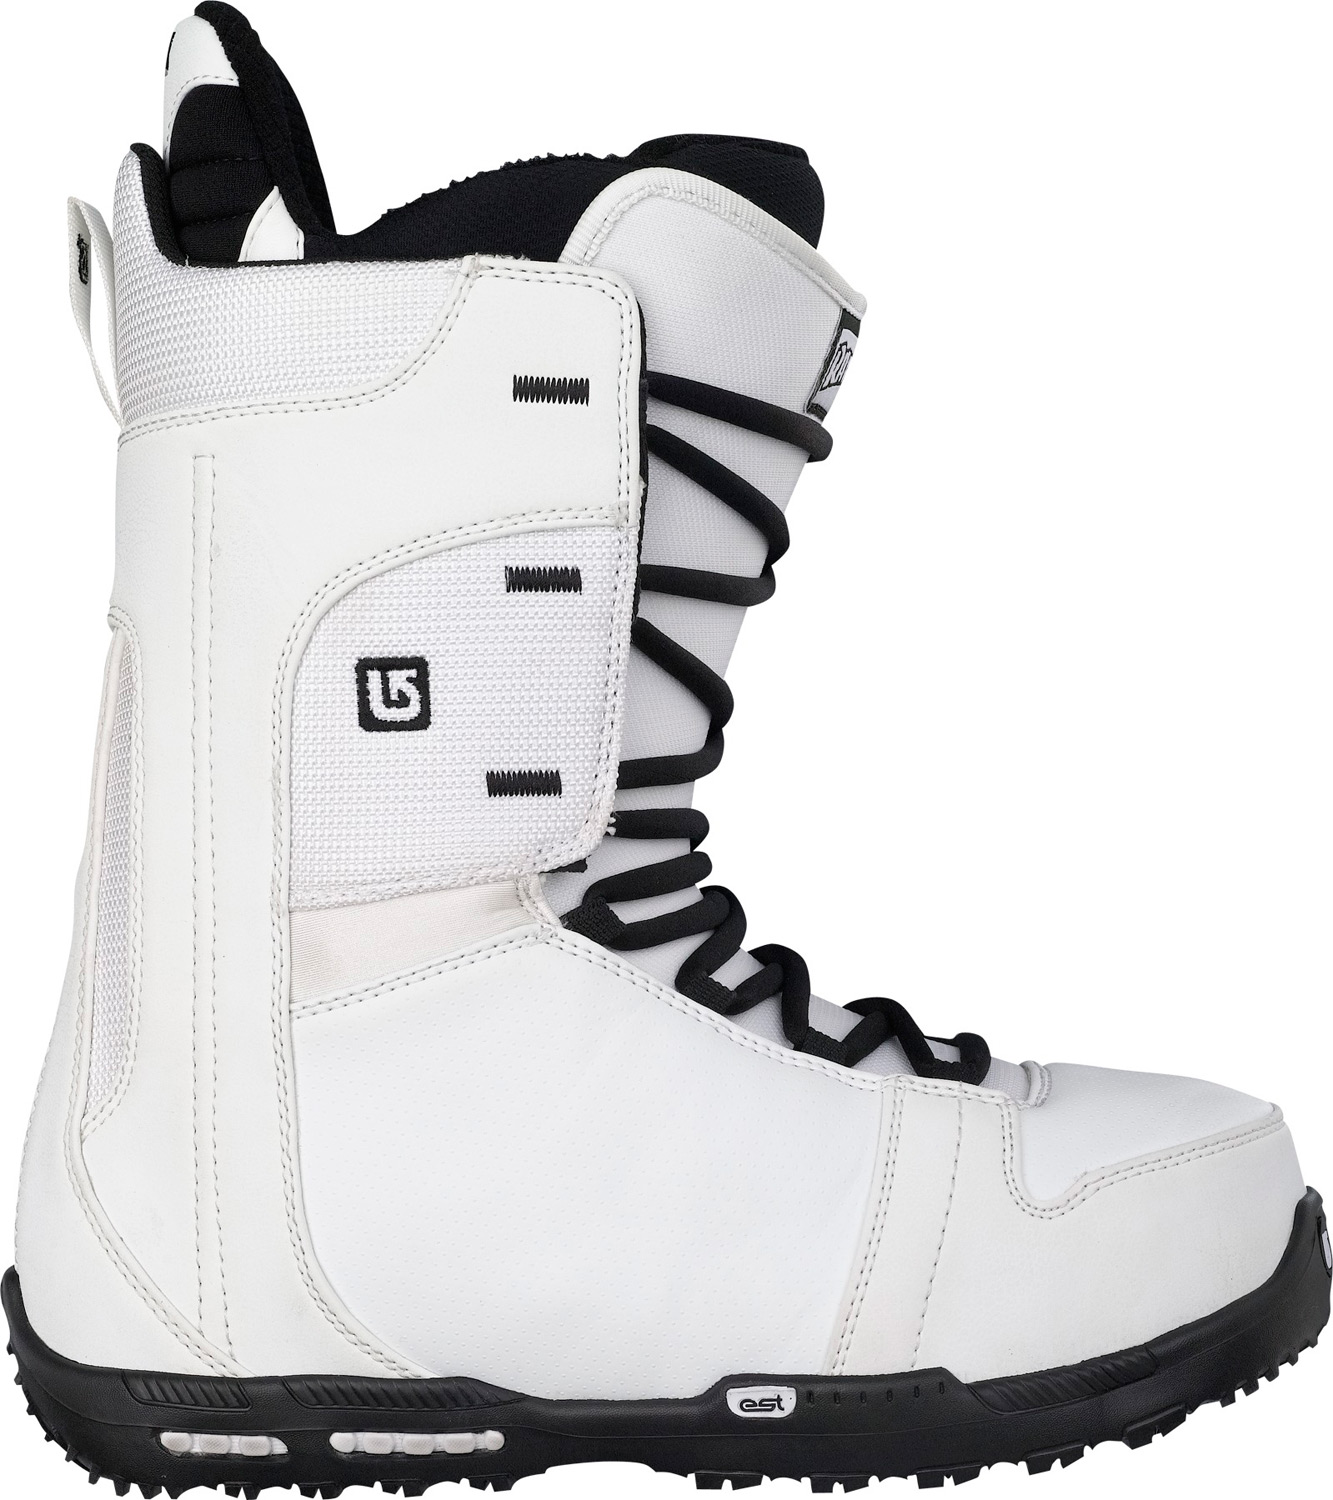 Snowboard Burton's lightest boot ever.Key Features of the Burton Rampant Snowboard Boots:  SUPPORT: 5   Shrinkage Footprint Reduction Technology   LACING: Traditional   LINER: Flex Liner with Rad Pad for Lace Comfort   CUSHIONING: DynoLite EST Optimized Outsole with B3 Gel Cushioning   FLEX AND RESPONSE: NEW Crossbone Upper Cuff, Flex Spine Backstay, and Medium Flex Thin Profile 3D Molded Tongue   COMFORT: NEW Snow-Proof Internal Gusset and Ultra Cush Park 2 Footbed with Aegis Antimicrobial Coating - $129.95